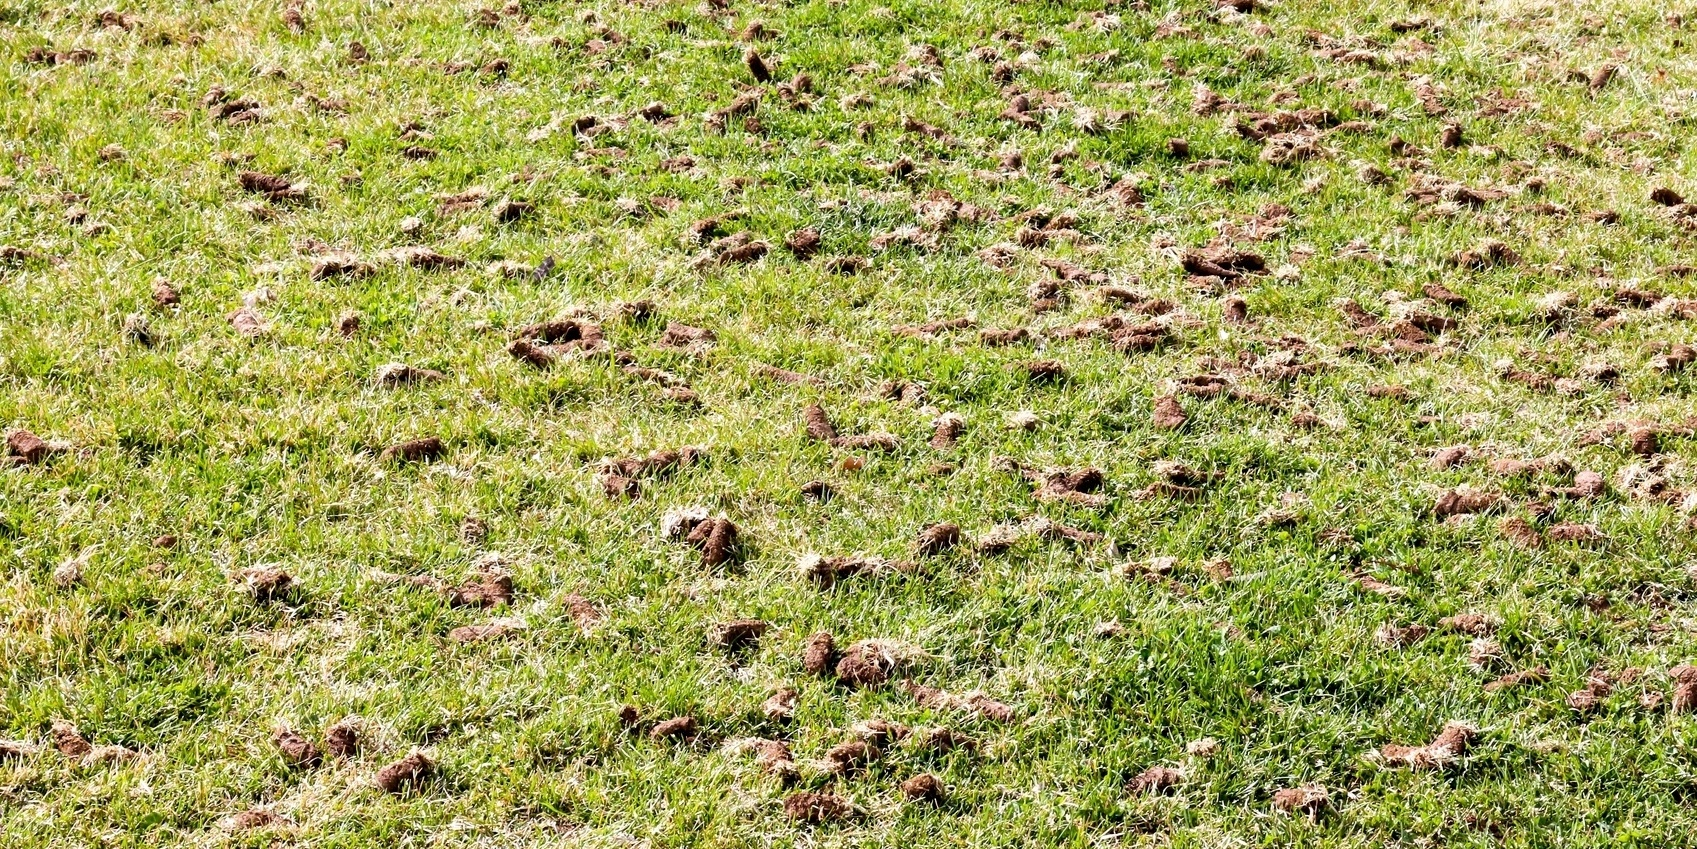 When an aeration is performed, small cores of soil (and thatch) are removed from the lawn with an aeration machine.